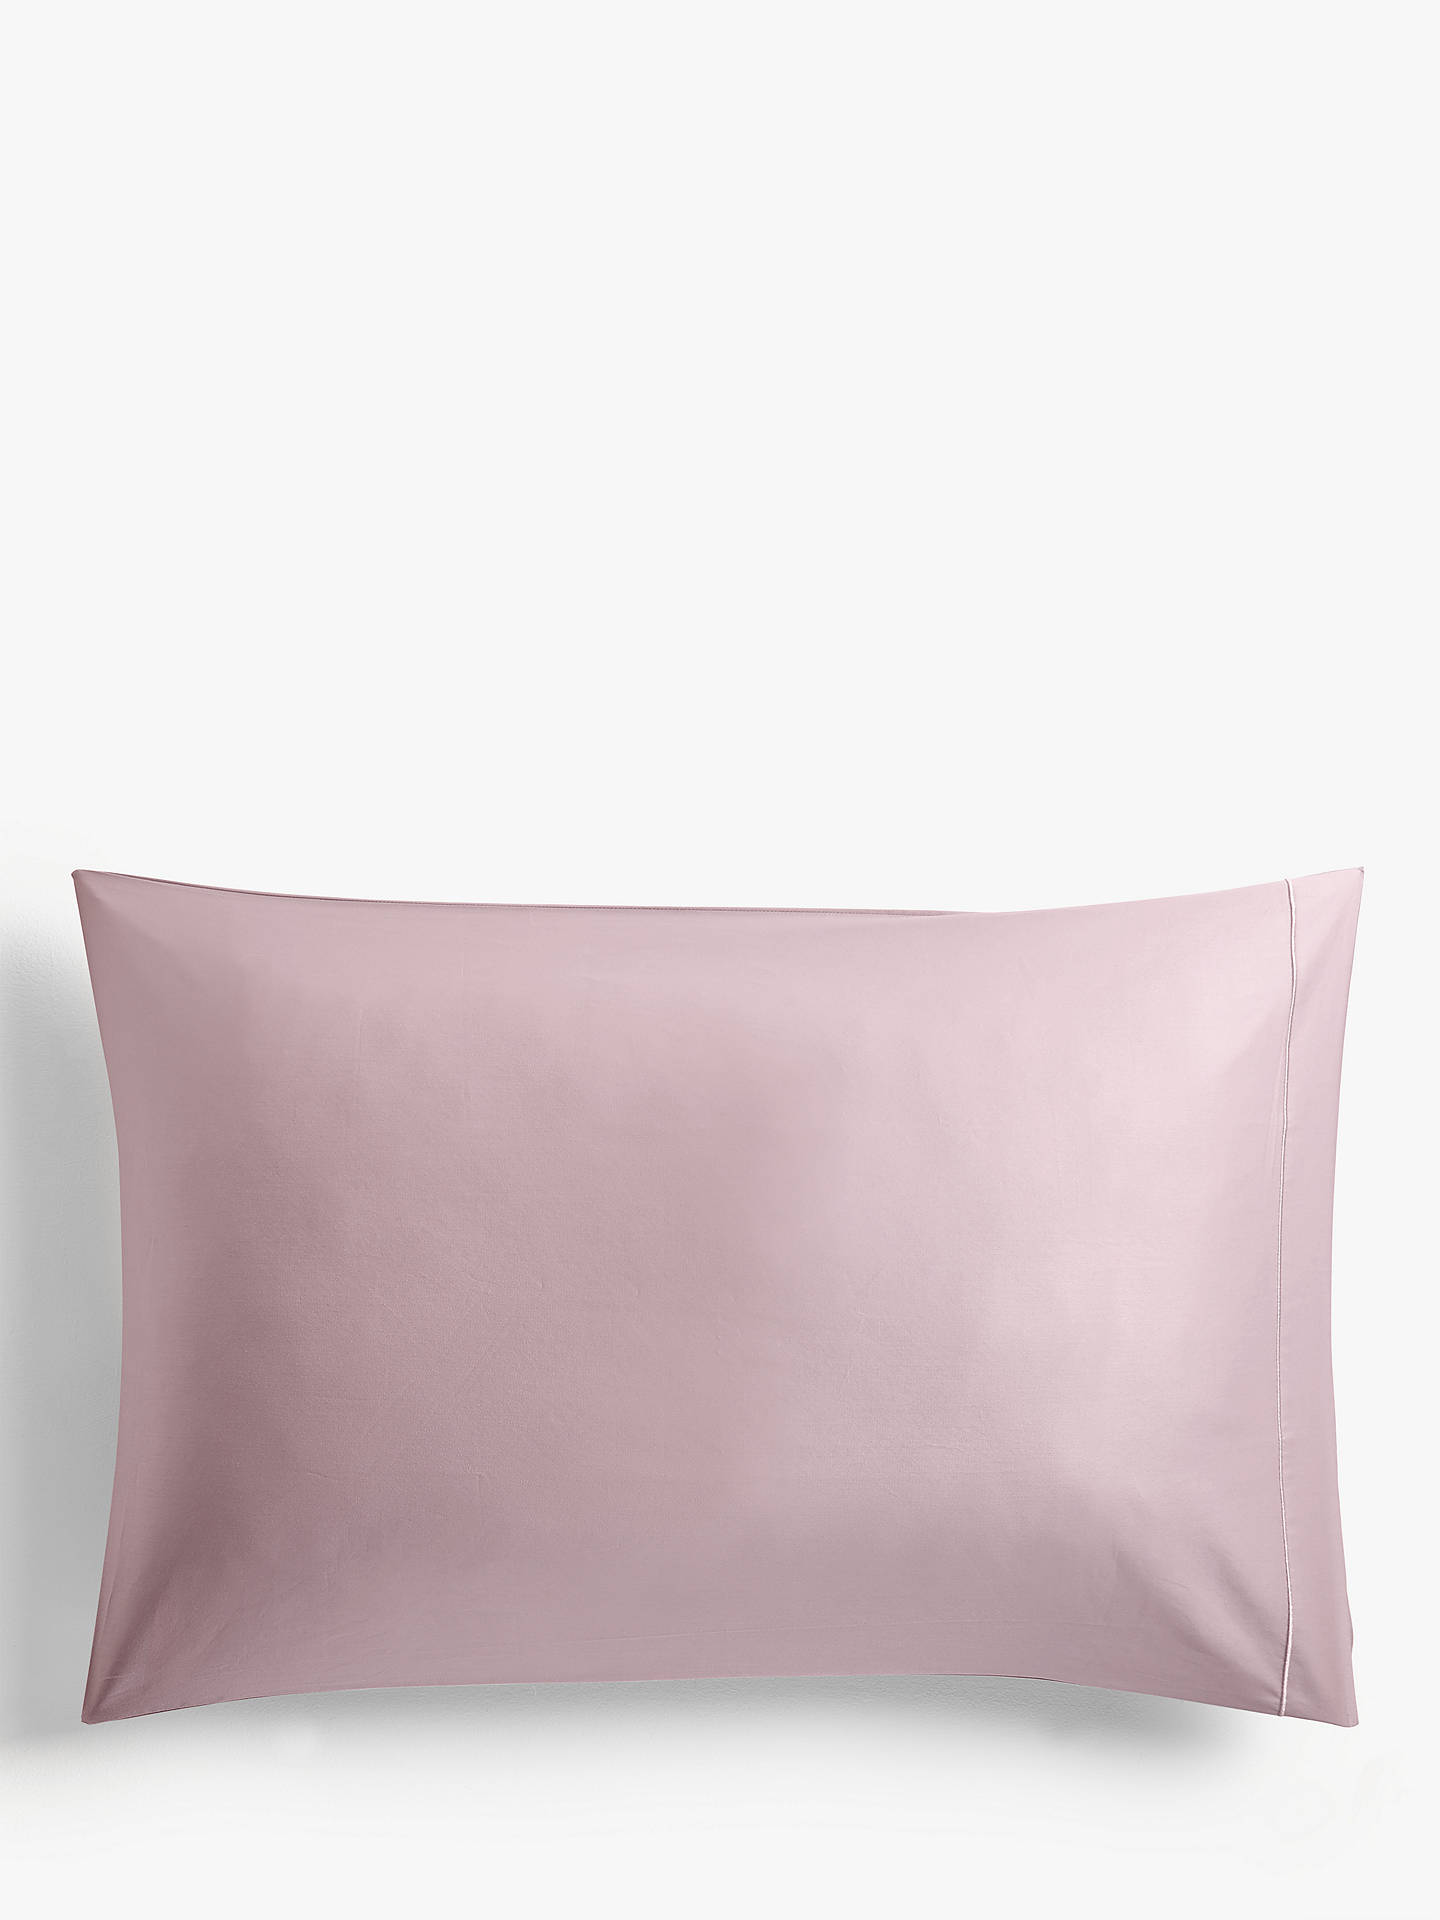 Buy John Lewis & Partners 400 Thread Count Soft & Silky Egyptian Cotton Oxford Pillowcase, Mauve Online at johnlewis.com